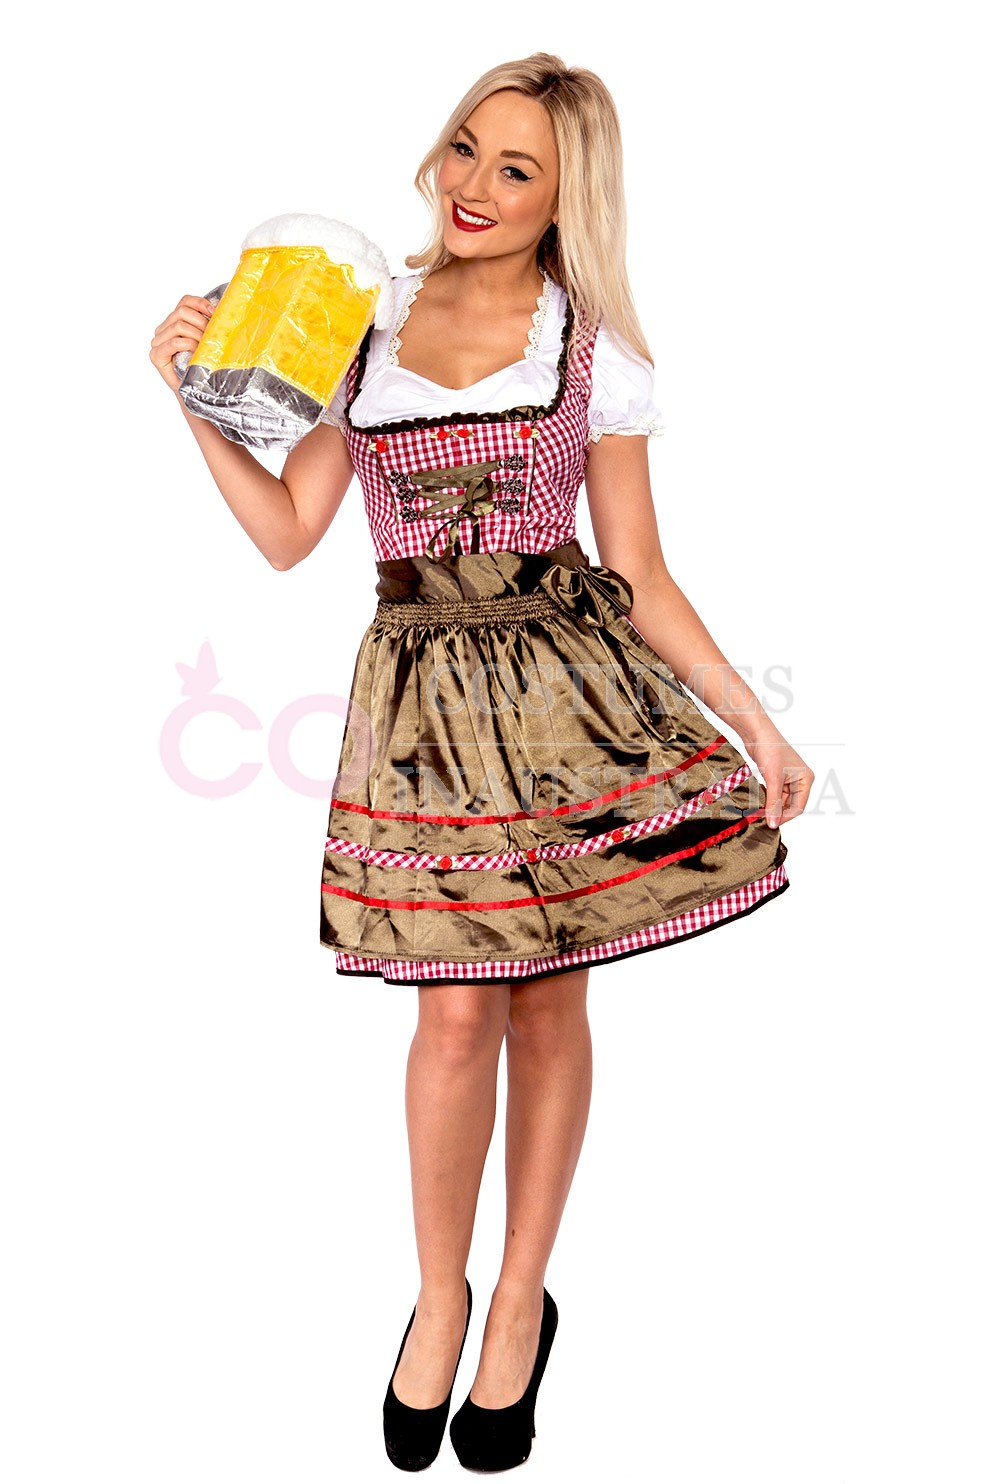 Ladies Beer Maid Costume Wench German Heidi Oktoberfest Gretchen Fancy Dress | eBay  sc 1 st  eBay & Ladies Beer Maid Costume Wench German Heidi Oktoberfest Gretchen ...